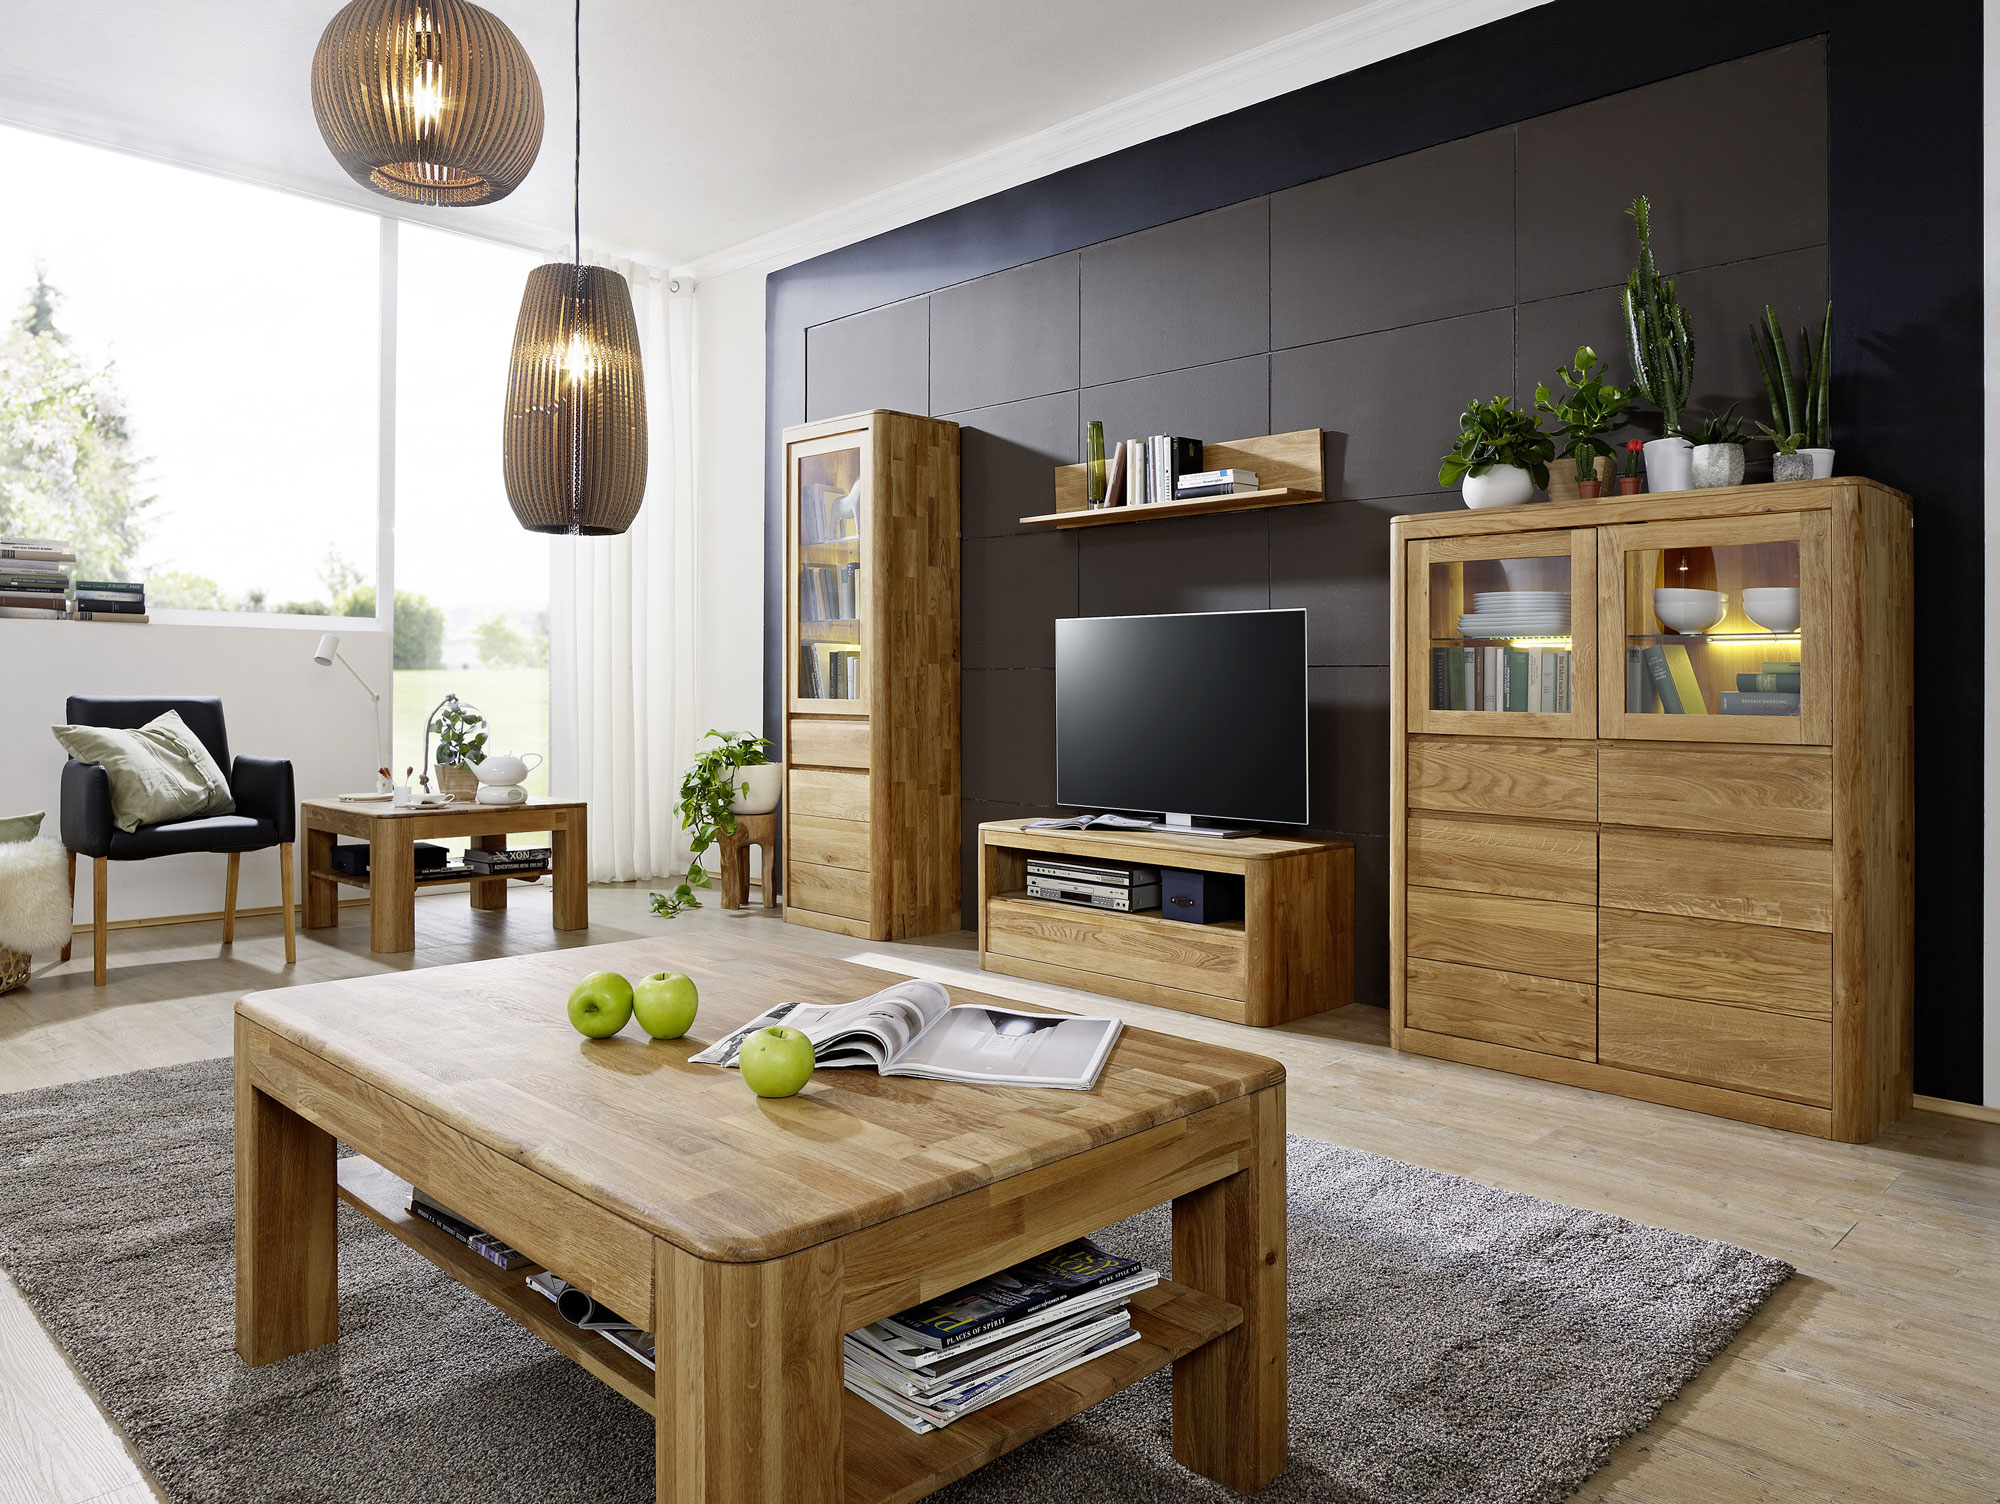 astoria i lowboard wildeiche massiv ge lt. Black Bedroom Furniture Sets. Home Design Ideas